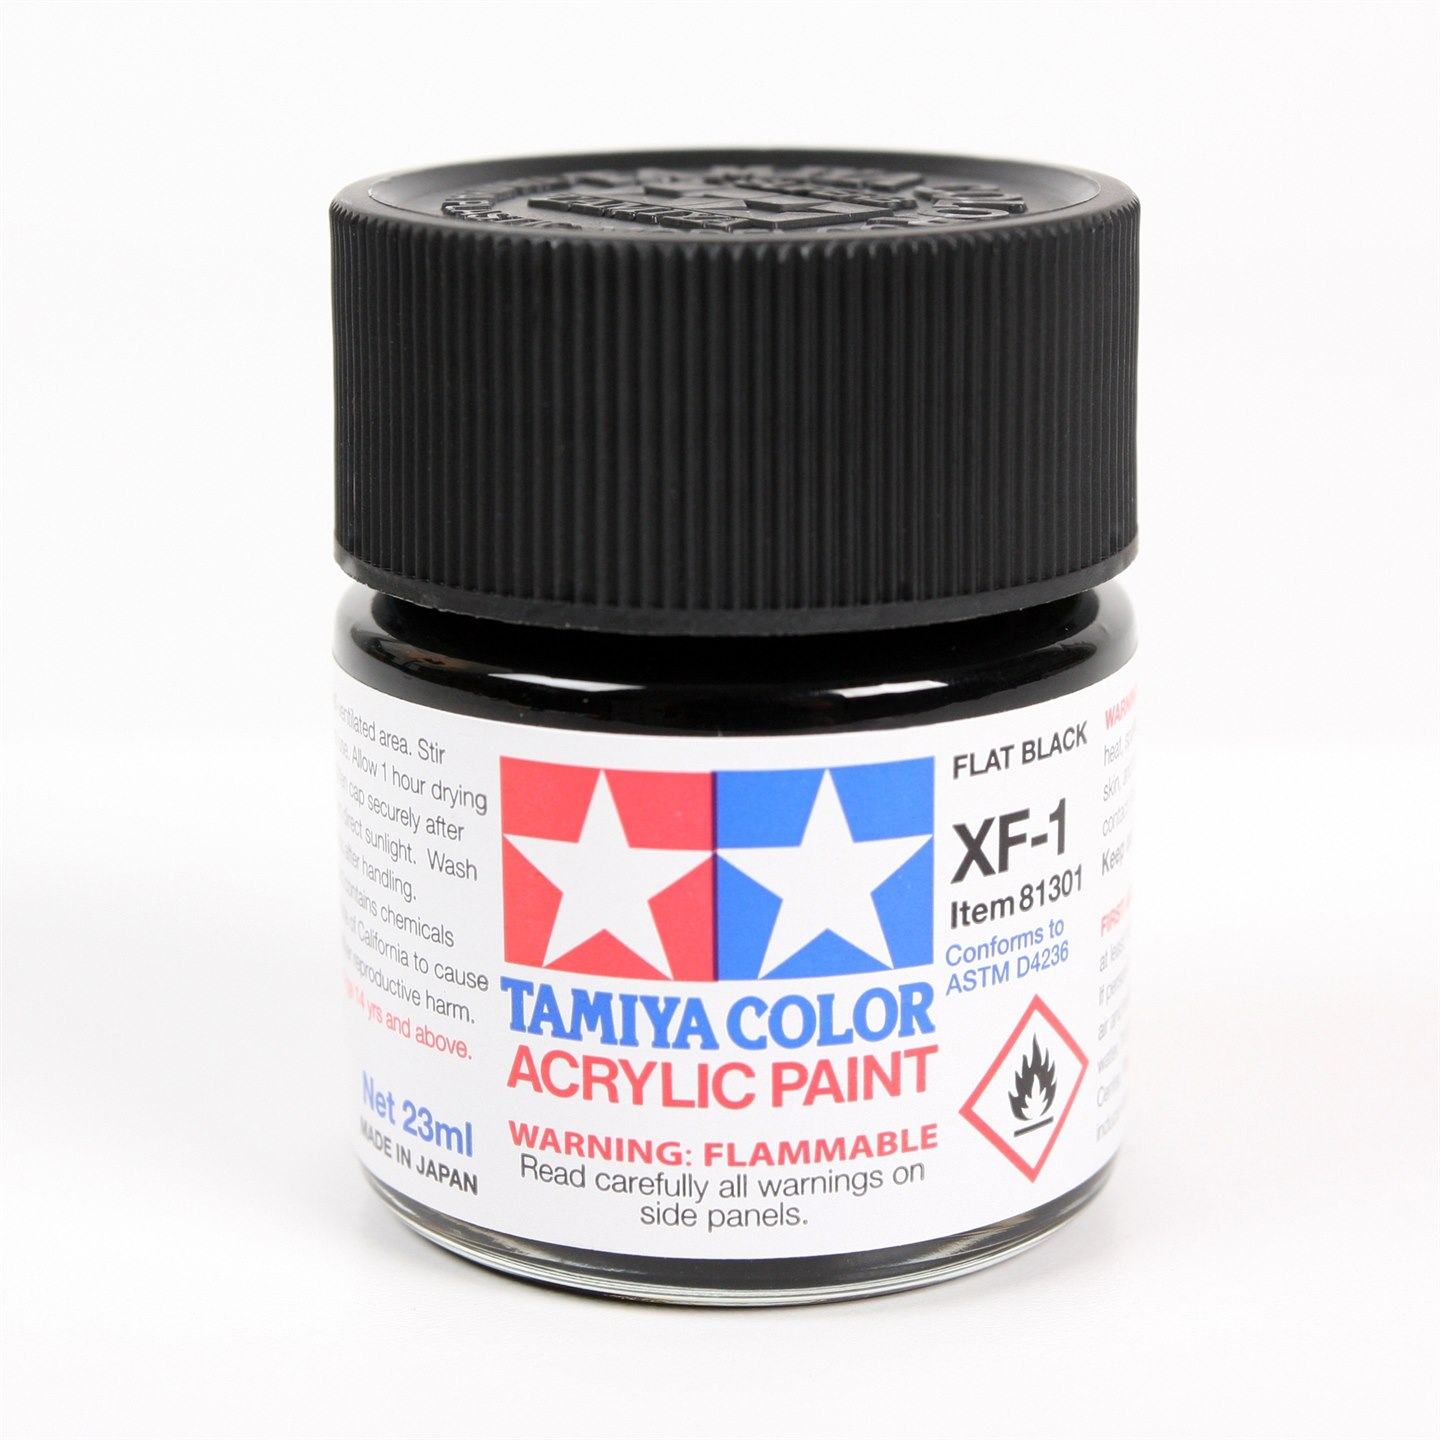 Tamiya Color Acrylic Paint XF-01 Flat Black (23ML)